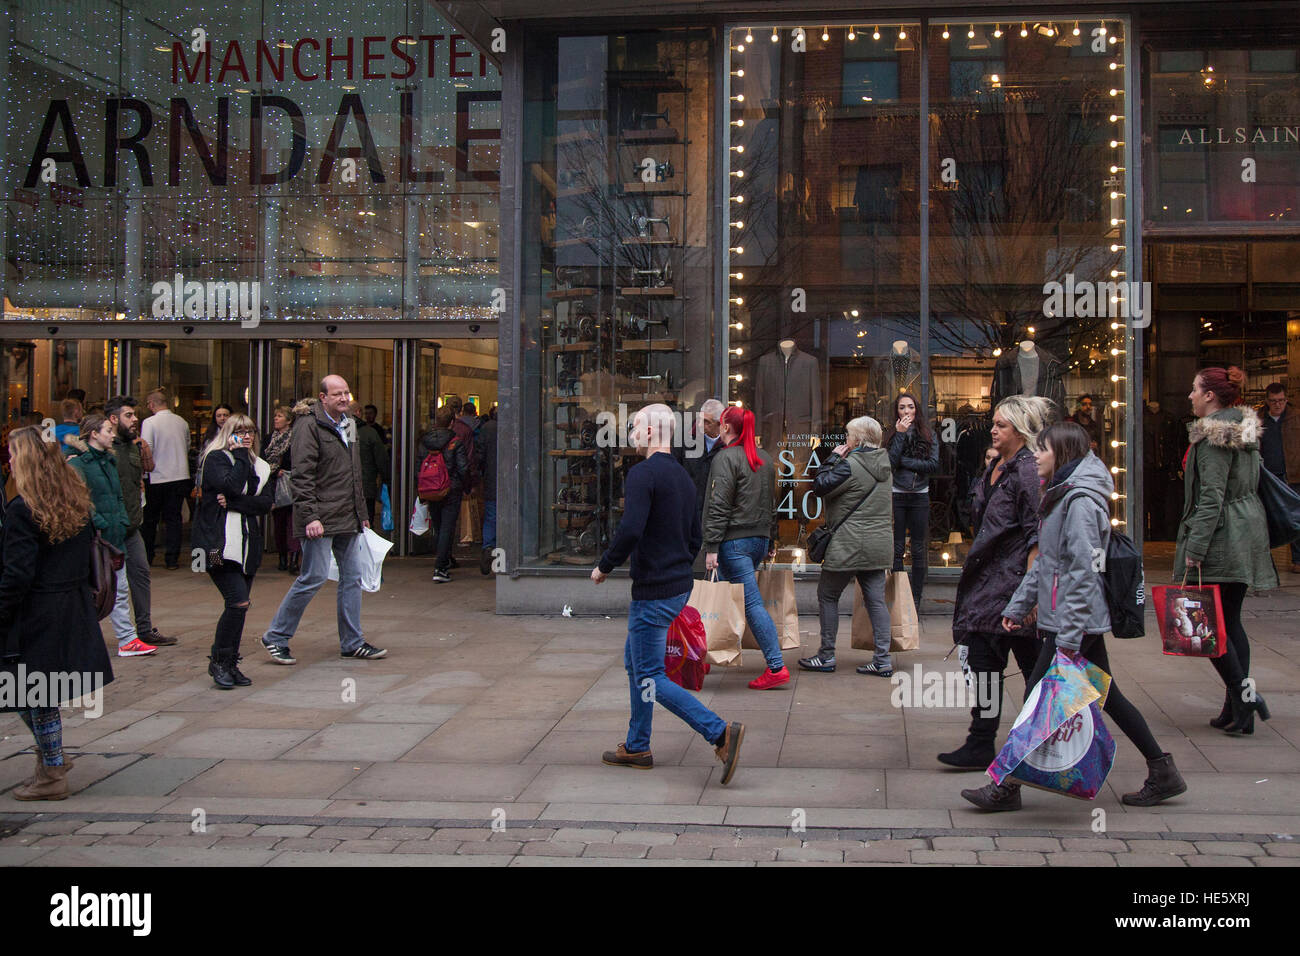 Everyday lifestyle street scenes in Manchester Arndale, UK. 17th December, 2016. Pre-Boxing Day Sales start in the Stock Photo